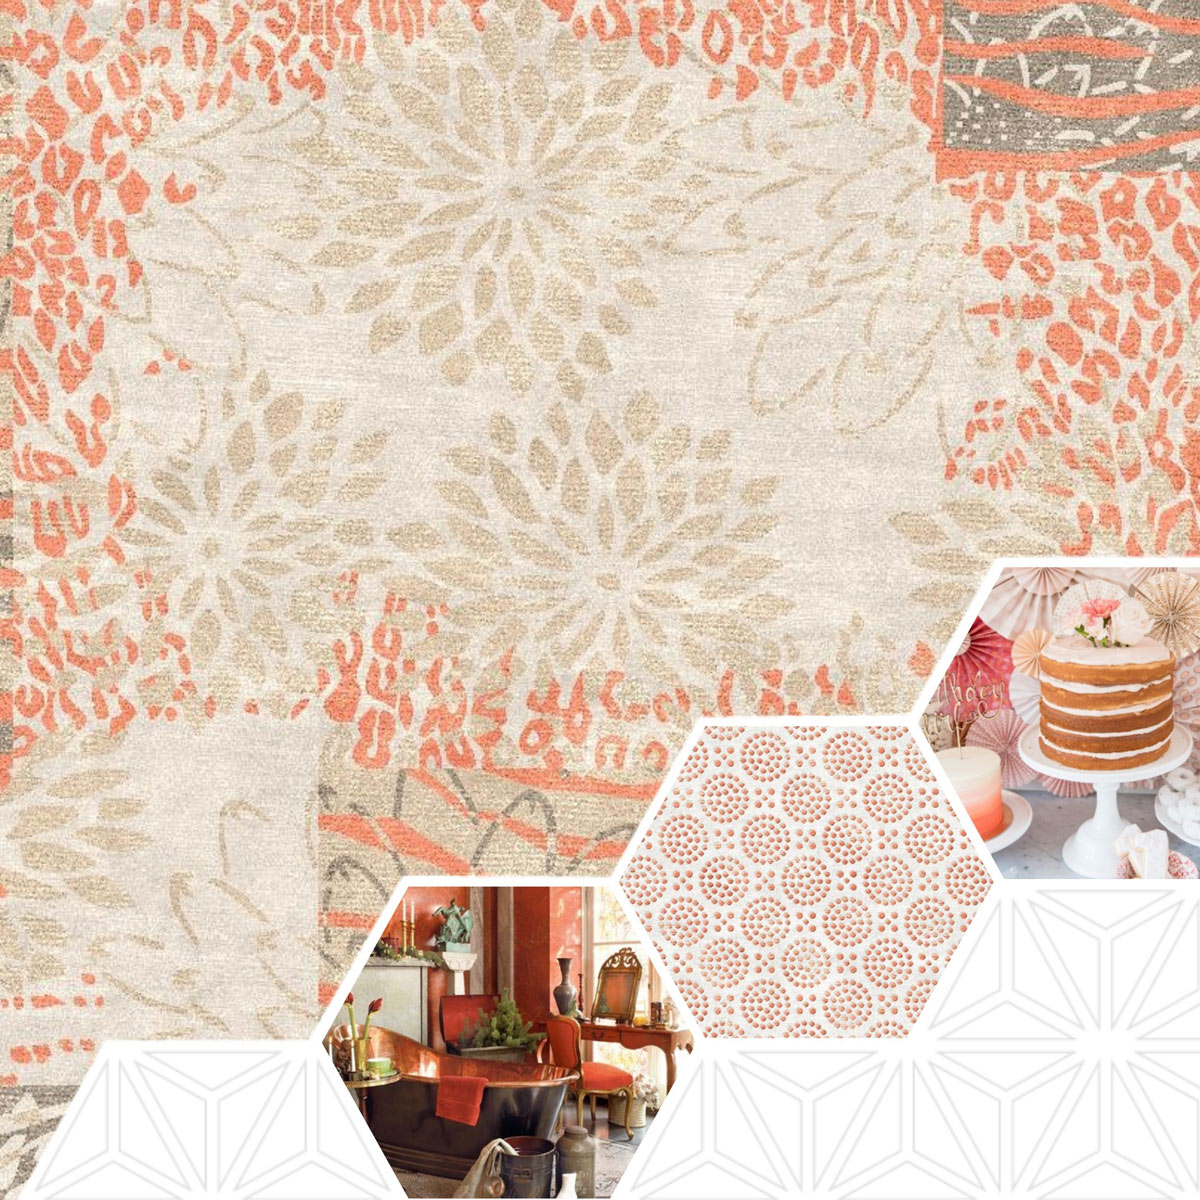 Living Coral Is the Color of the Year for 2019; Signature 16 Coral themed rug alongside of elegant coral themed bathroom and set of birthday cakes (bathroom image from Nancy Worden Geisel - https://www.pinterest.com/pin/499618152386898659/?lp=true; cakes photo from www.karaspartyideas.com)